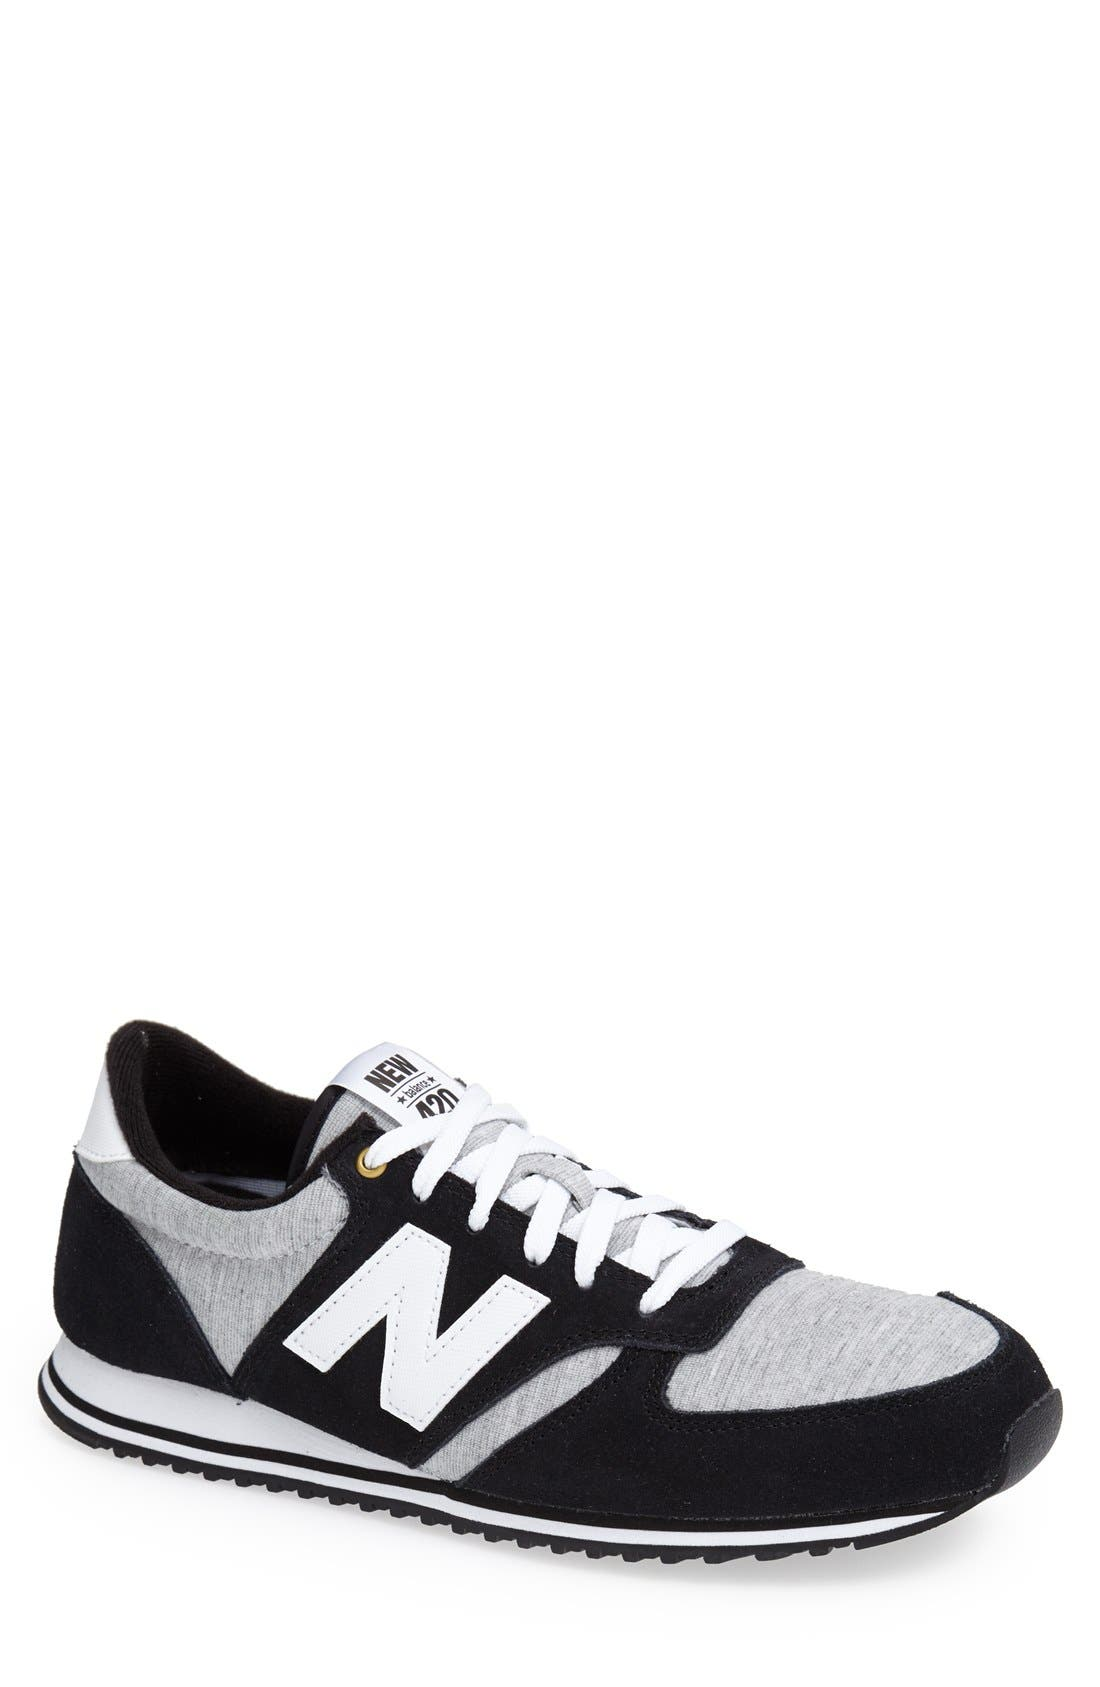 Alternate Image 1 Selected - New Balance '420' Sneaker (Men)